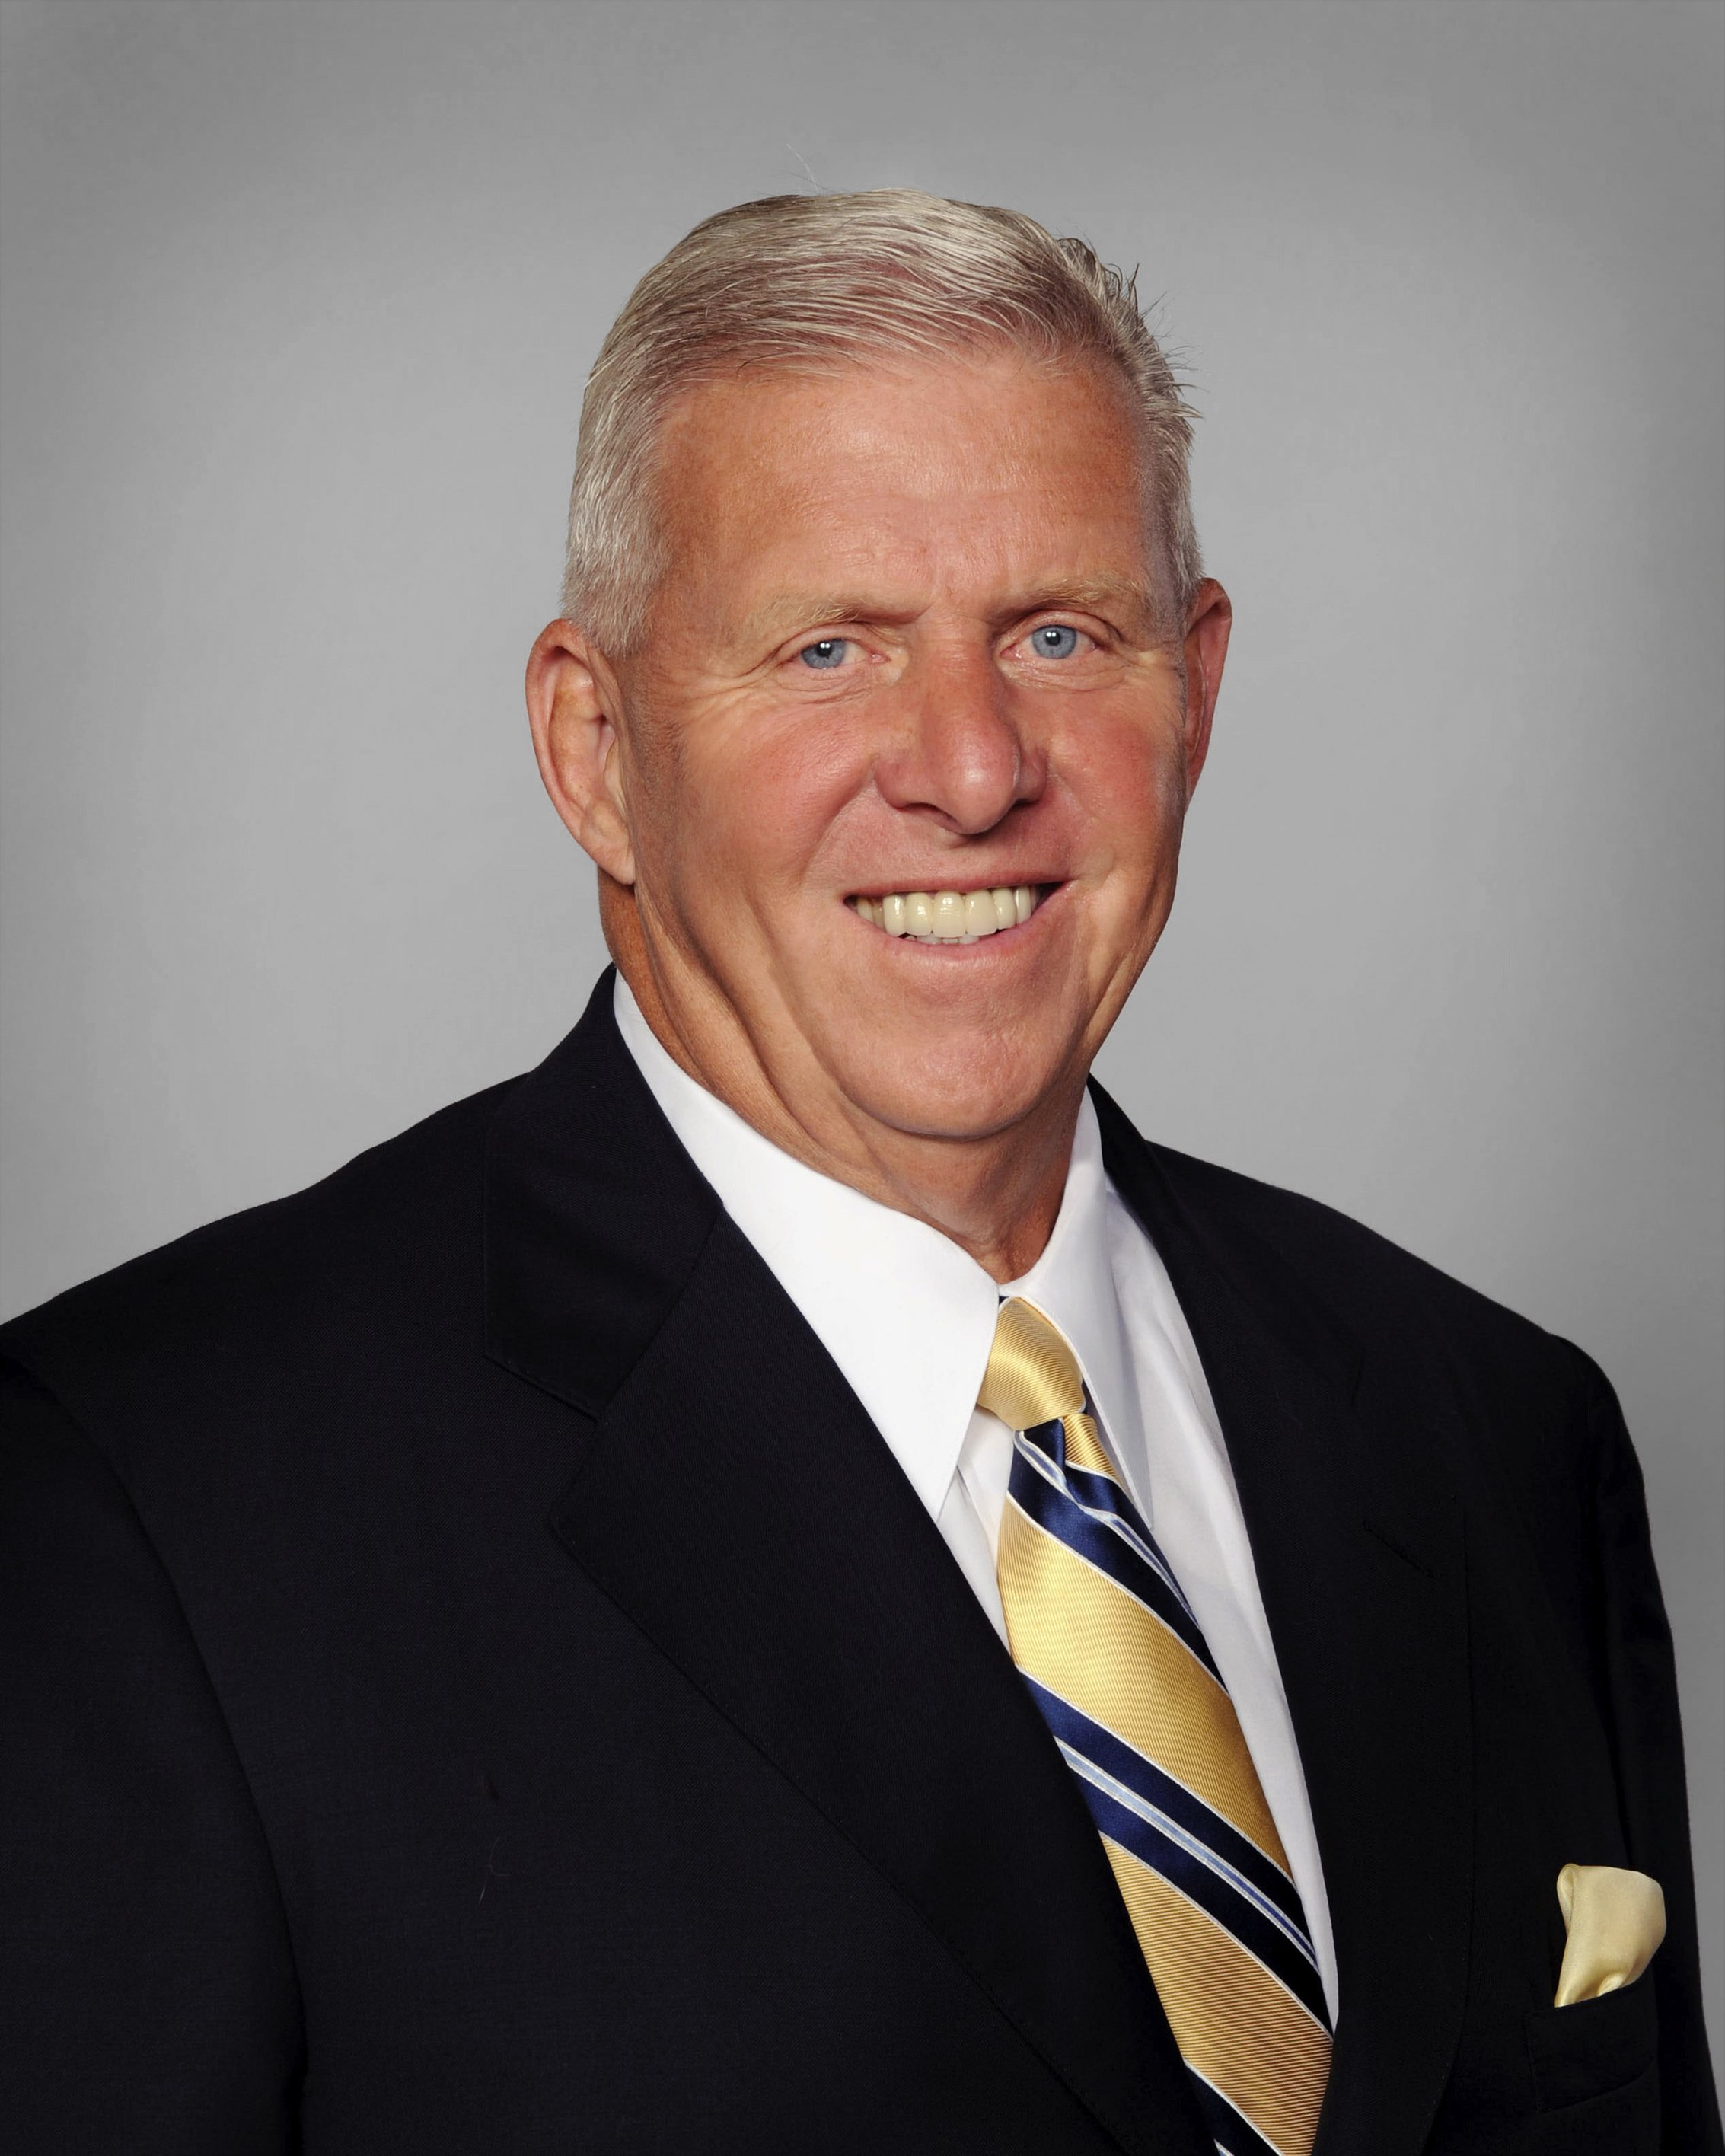 Bill Parcells image